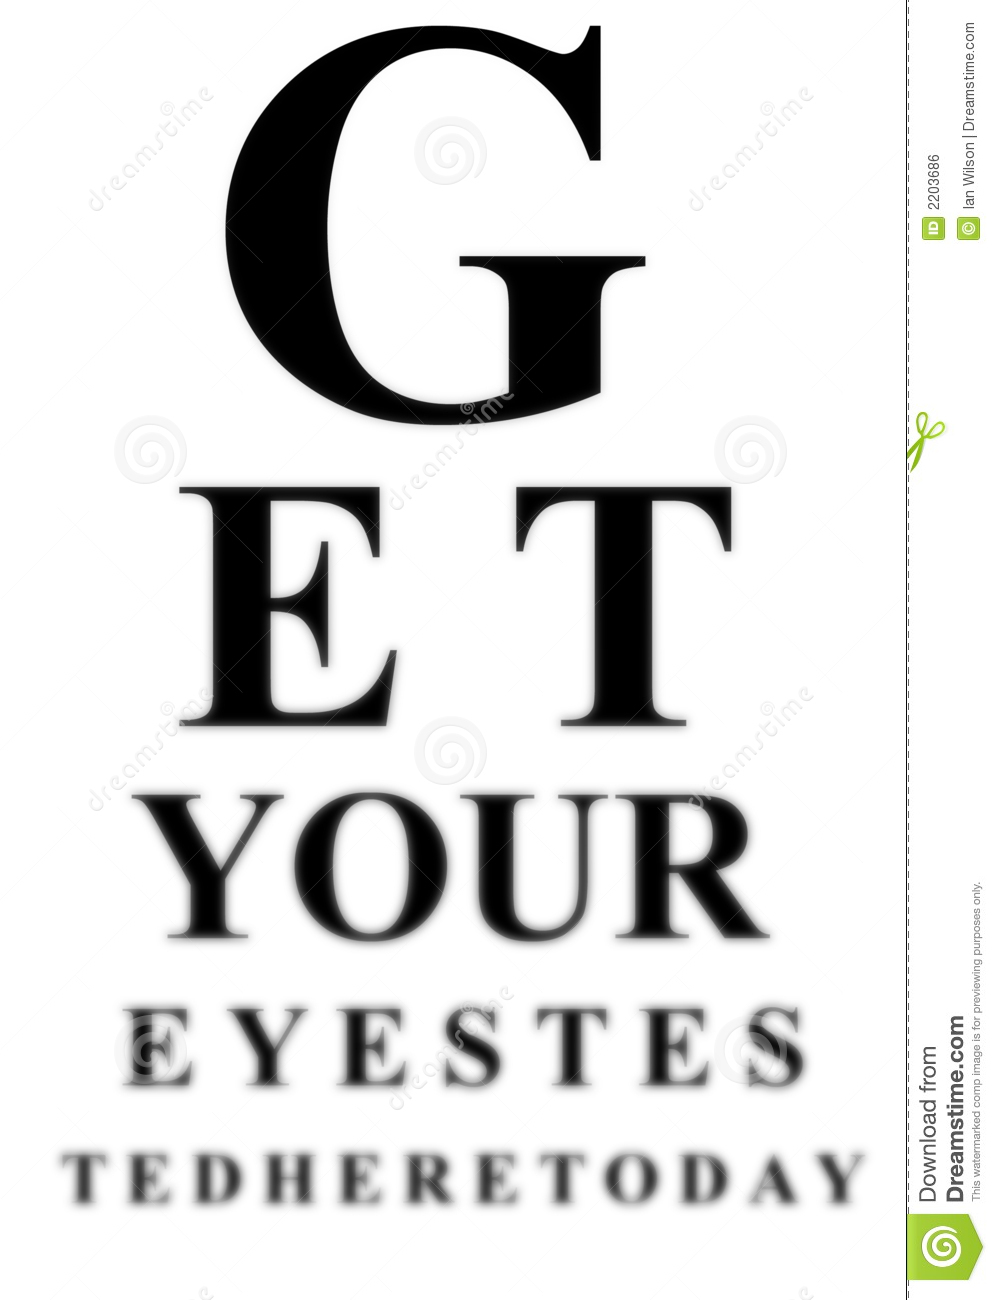 Blurred eye test chart stock illustration illustration of here blurred eye test chart geenschuldenfo Image collections